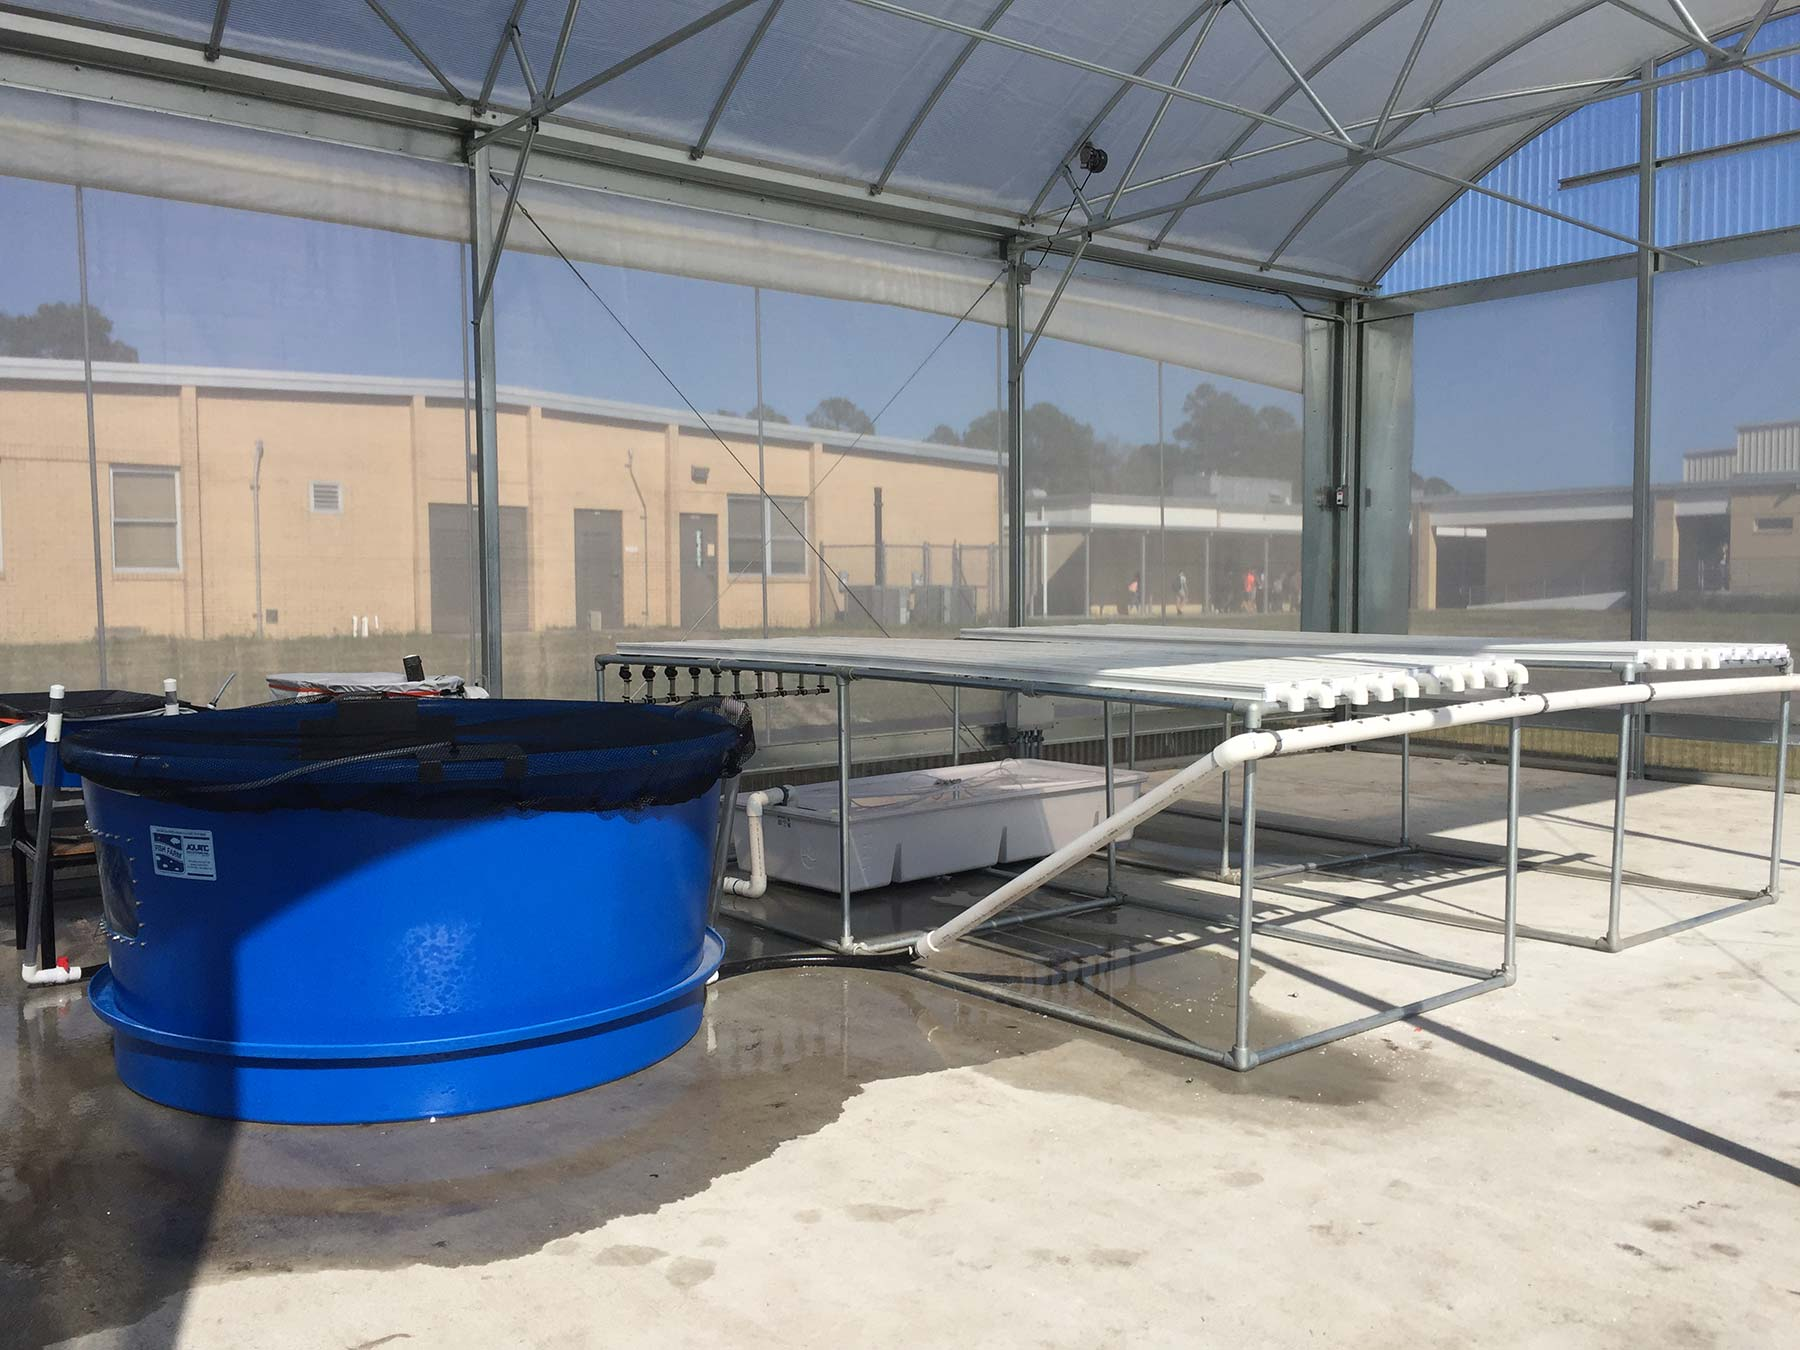 West Nassau High School Aquaponics Facility